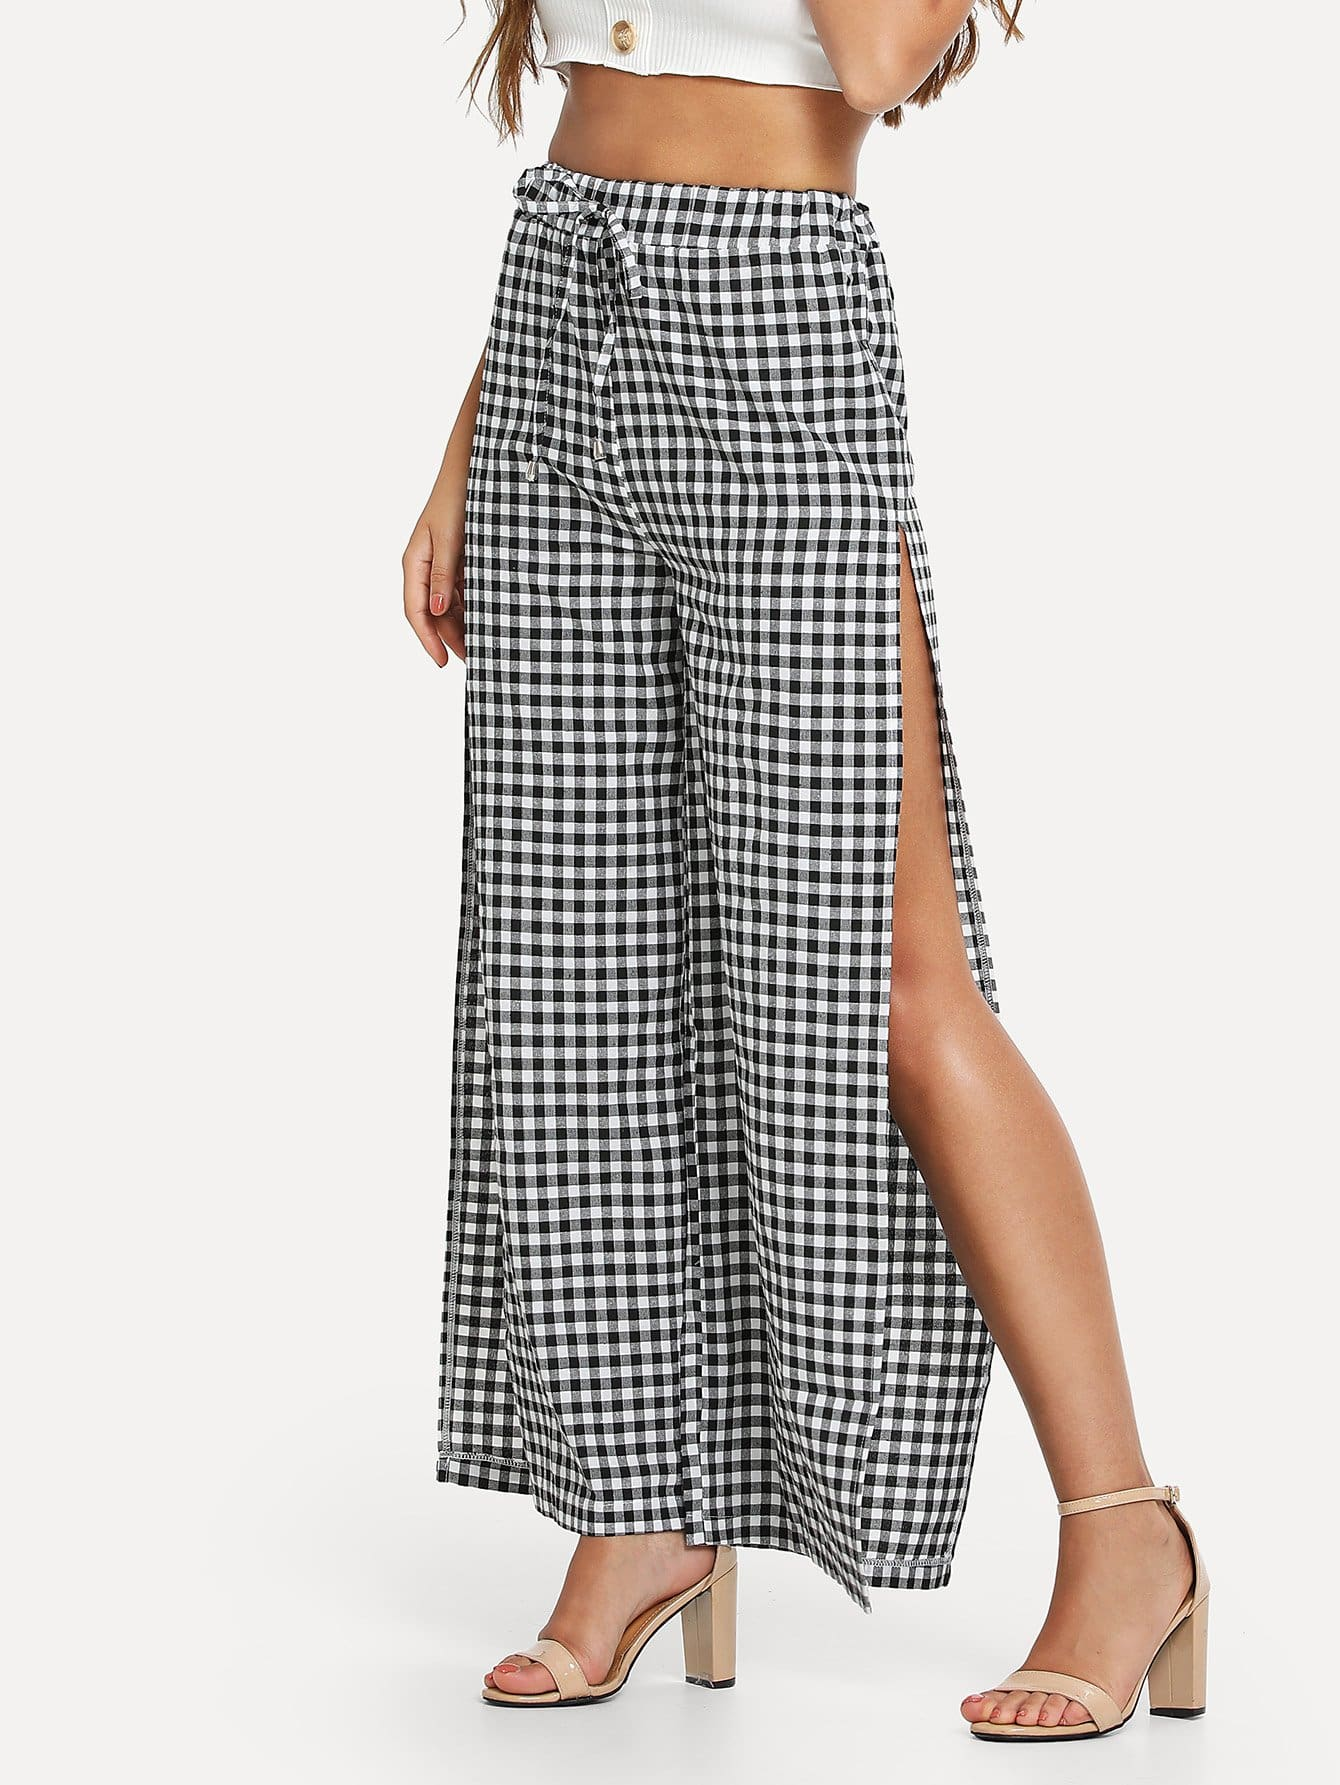 High Split Gingham Wide Leg Pants s xxl 2018 skinny slim high waist pencil pants women stretch sexy denim jeans bodycon leg split trousers